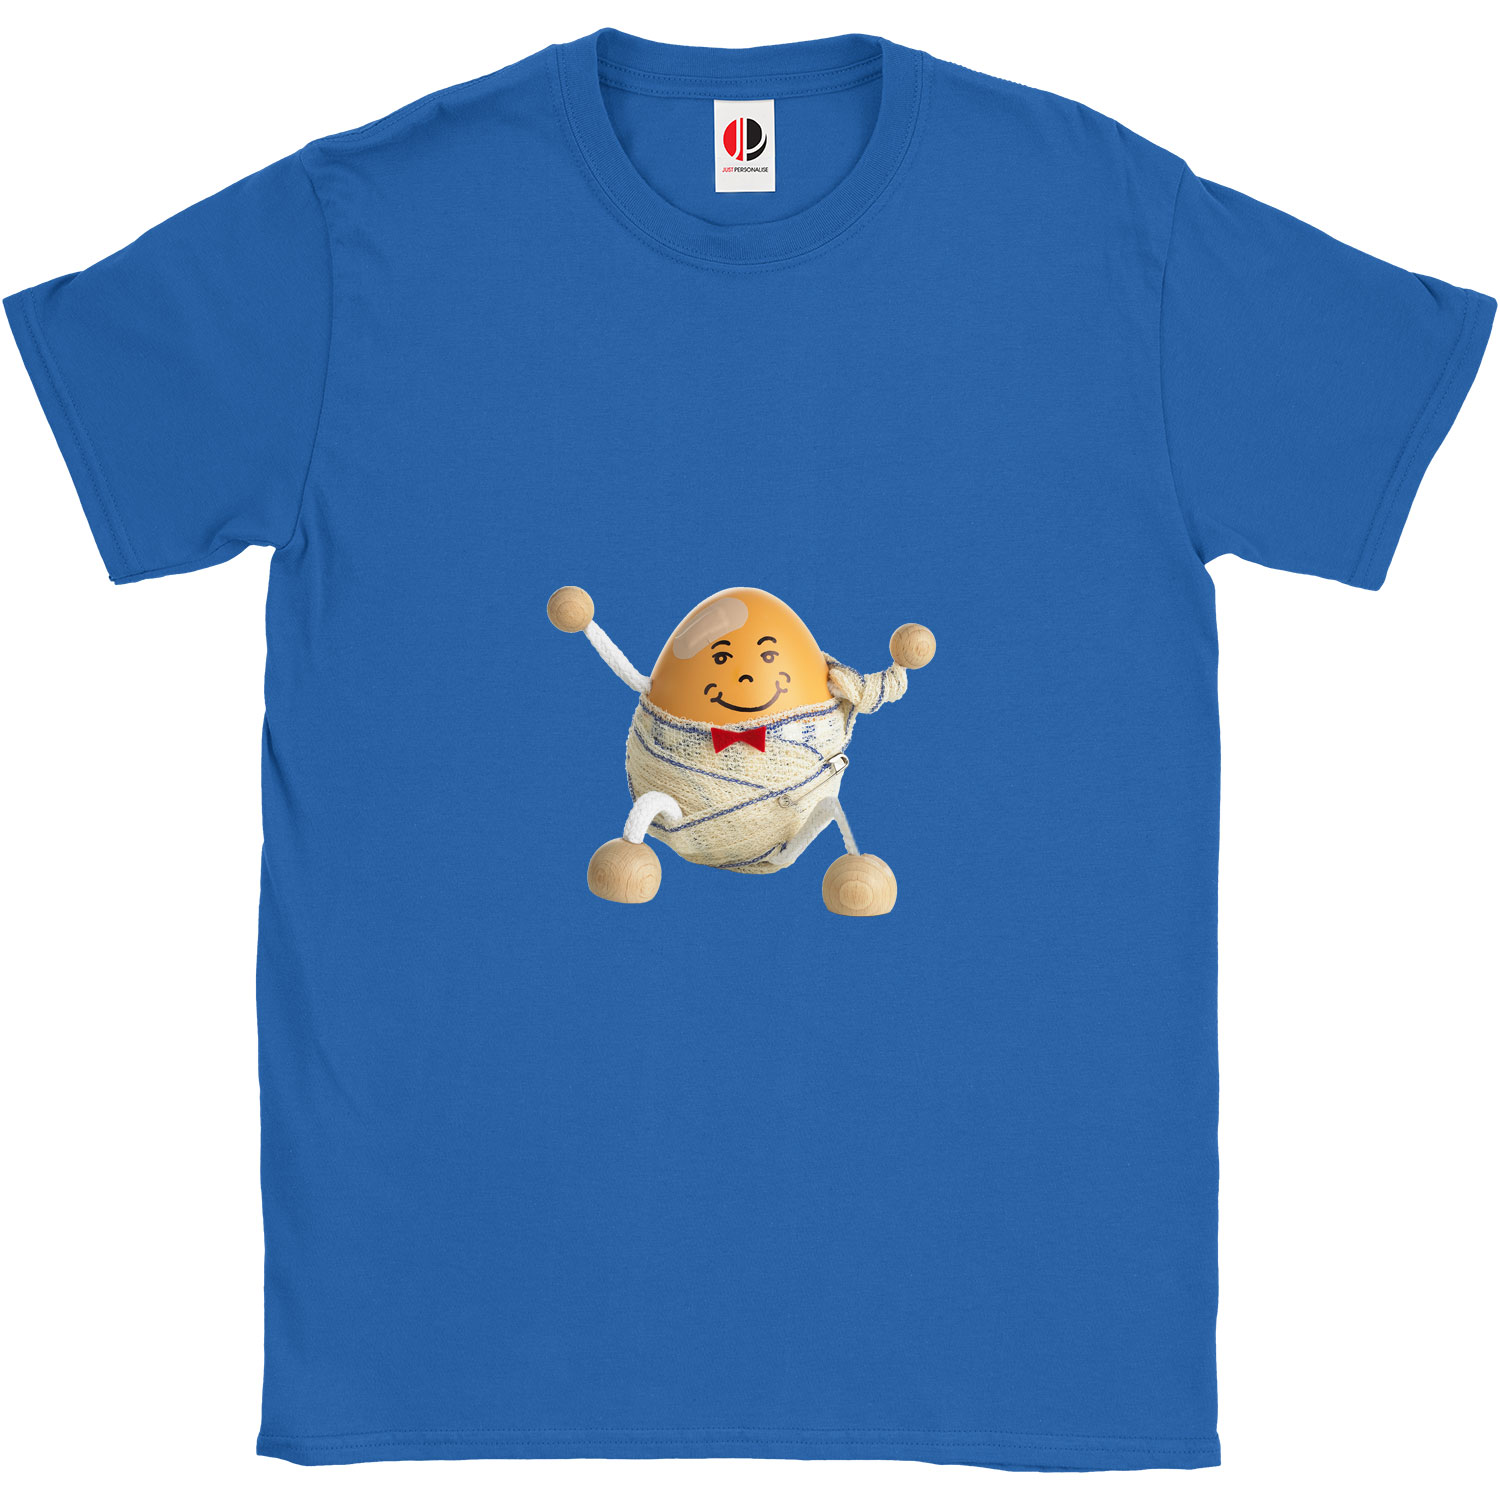 Kid's Royal Blue T-Shirt (9-11 Years Old)